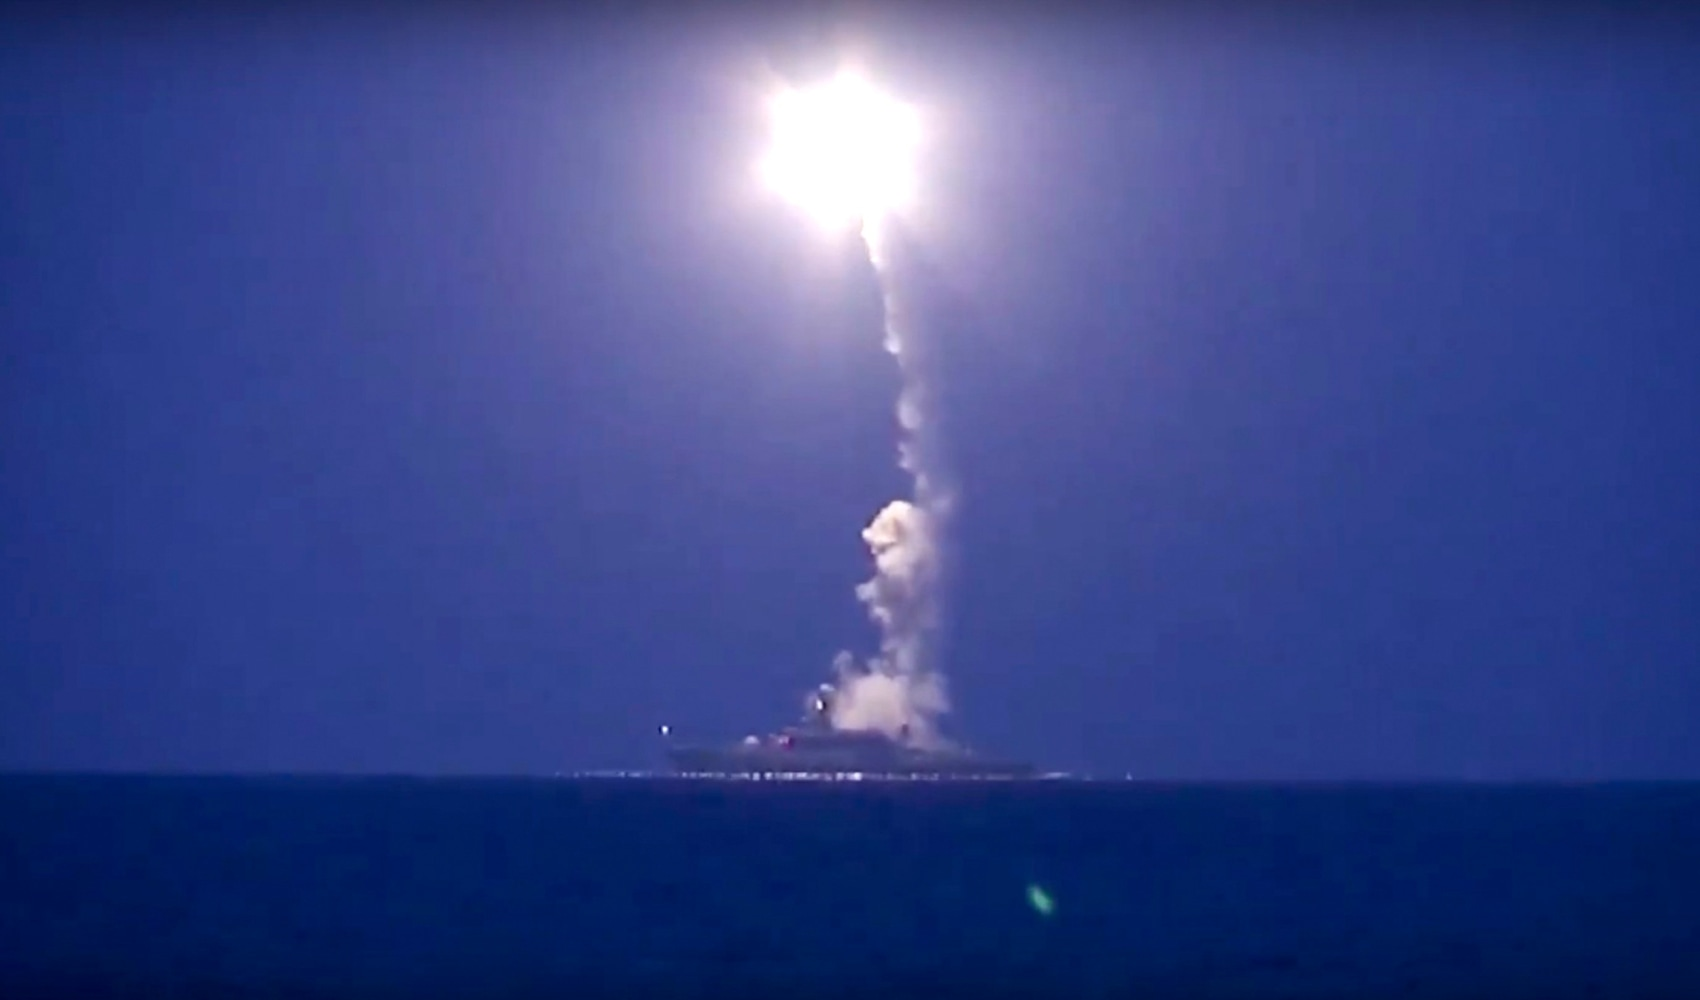 Russian Missiles Fired At Syria Landed In Iran U S